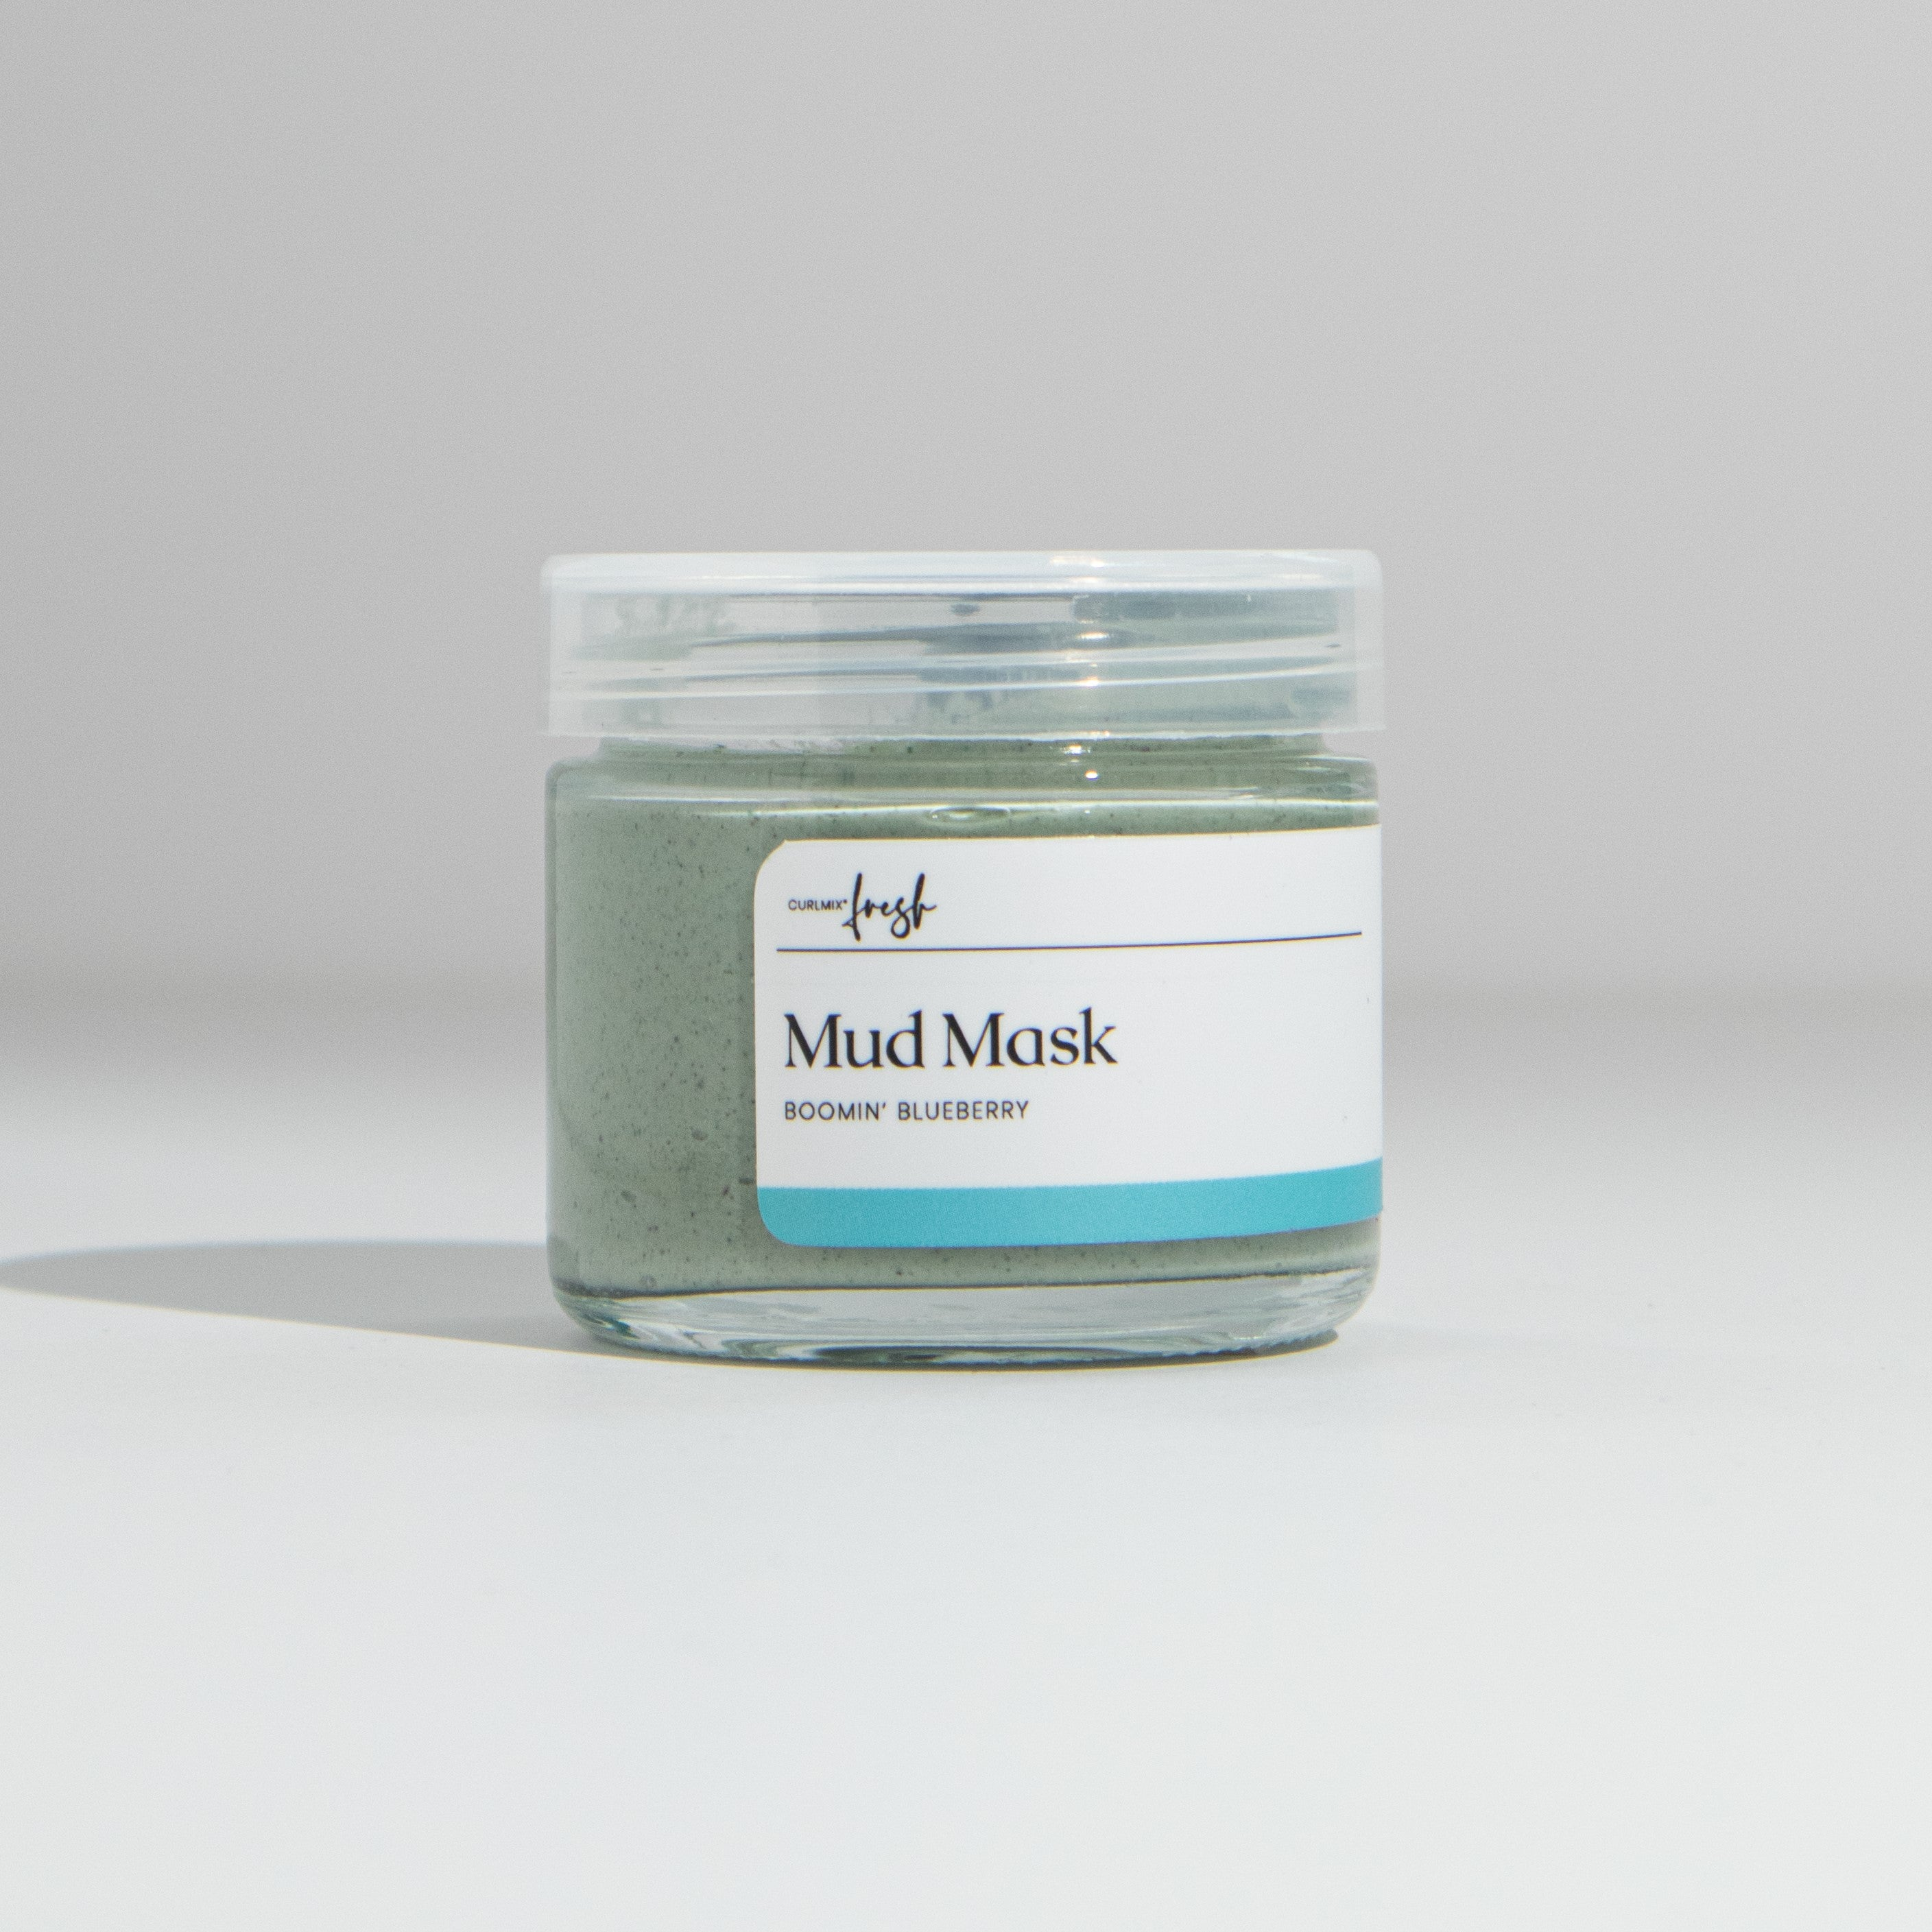 Boomin' Blueberry Mud Mask CurlMix Fresh